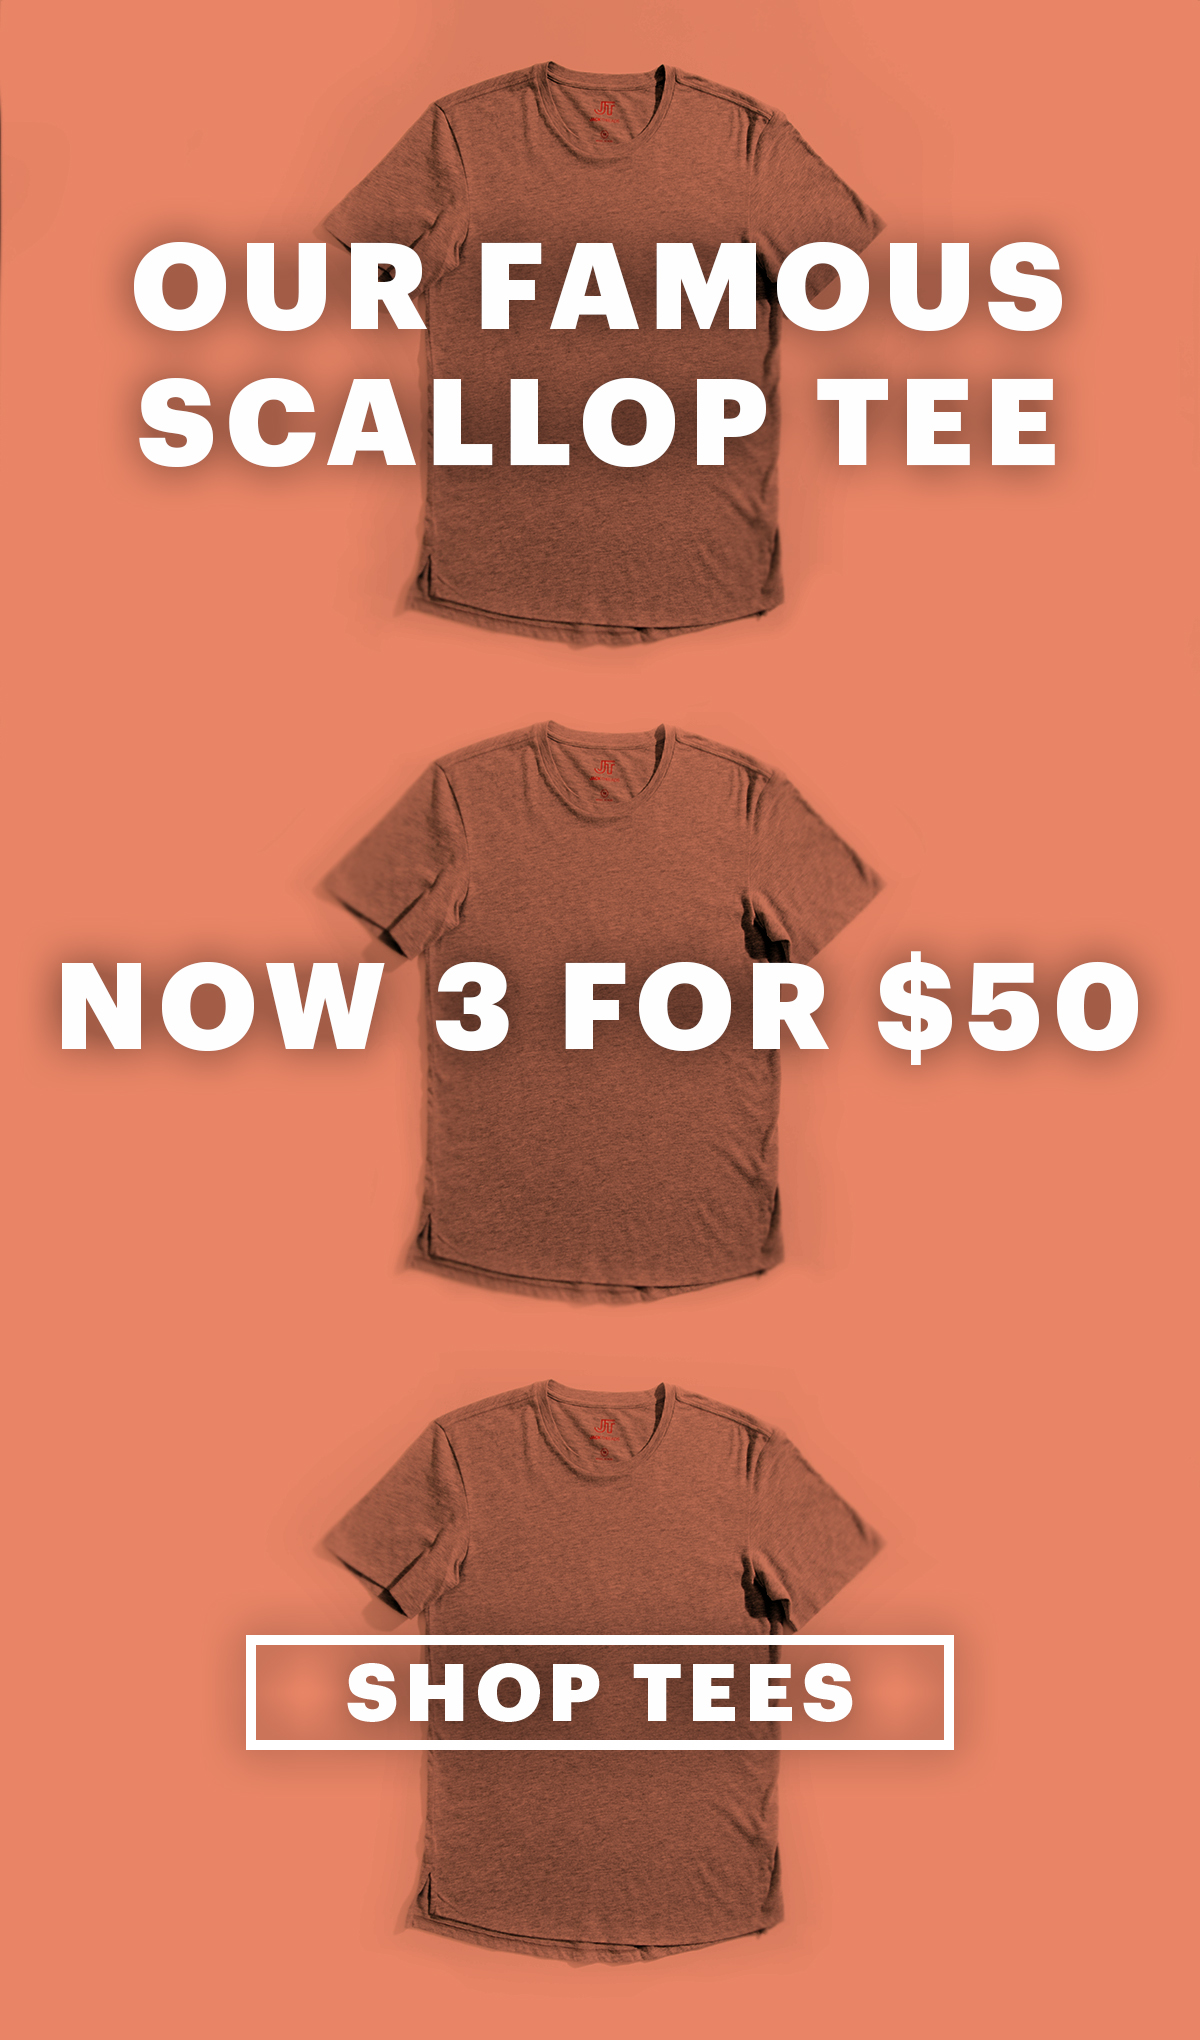 3 For $50 Scallop Tees